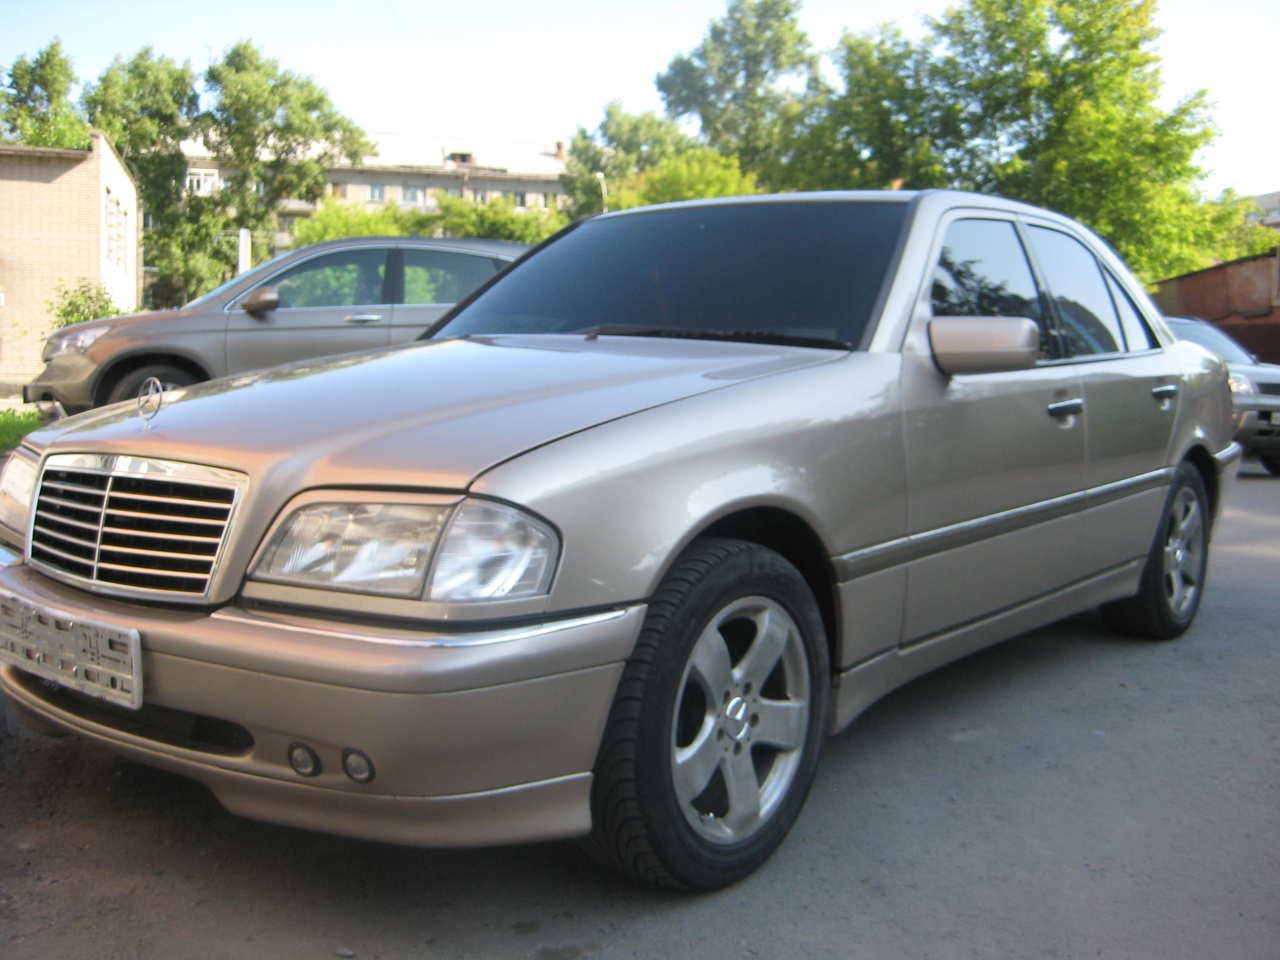 1999 mercedes benz c class pictures gasoline fr or rr automatic for sale. Black Bedroom Furniture Sets. Home Design Ideas